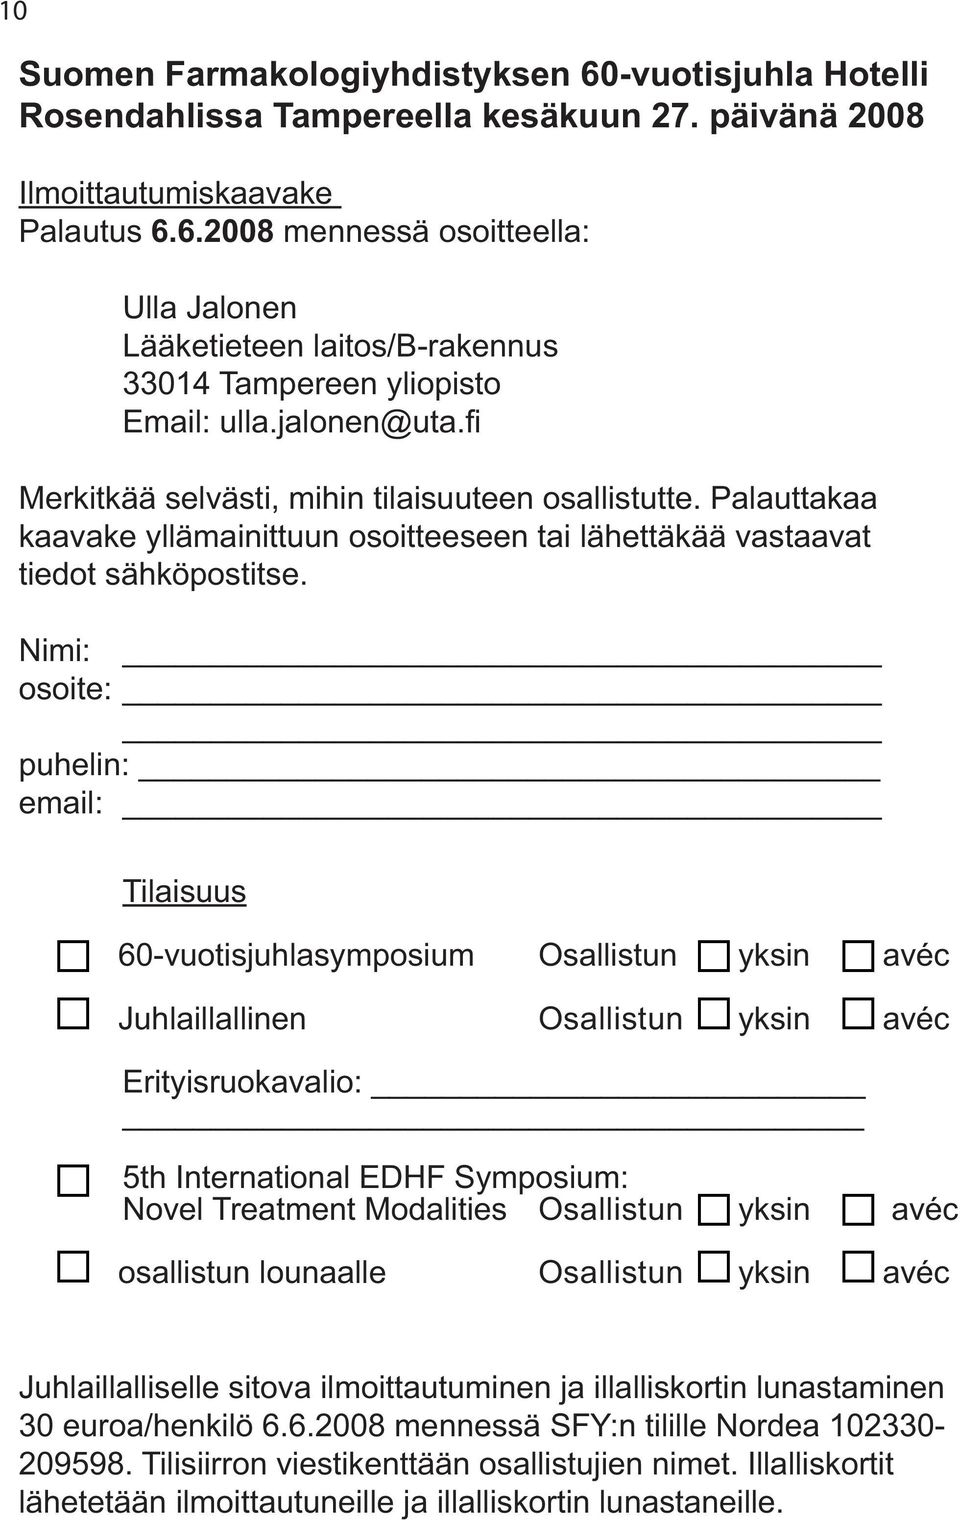 Nimi: osoite: puhelin: email: Tilaisuus 60-vuotisjuhlasymposium Osallistun yksin avéc Juhlaillallinen Osallistun yksin avéc Erityisruokavalio: 5th International EDHF Symposium: Novel Treatment